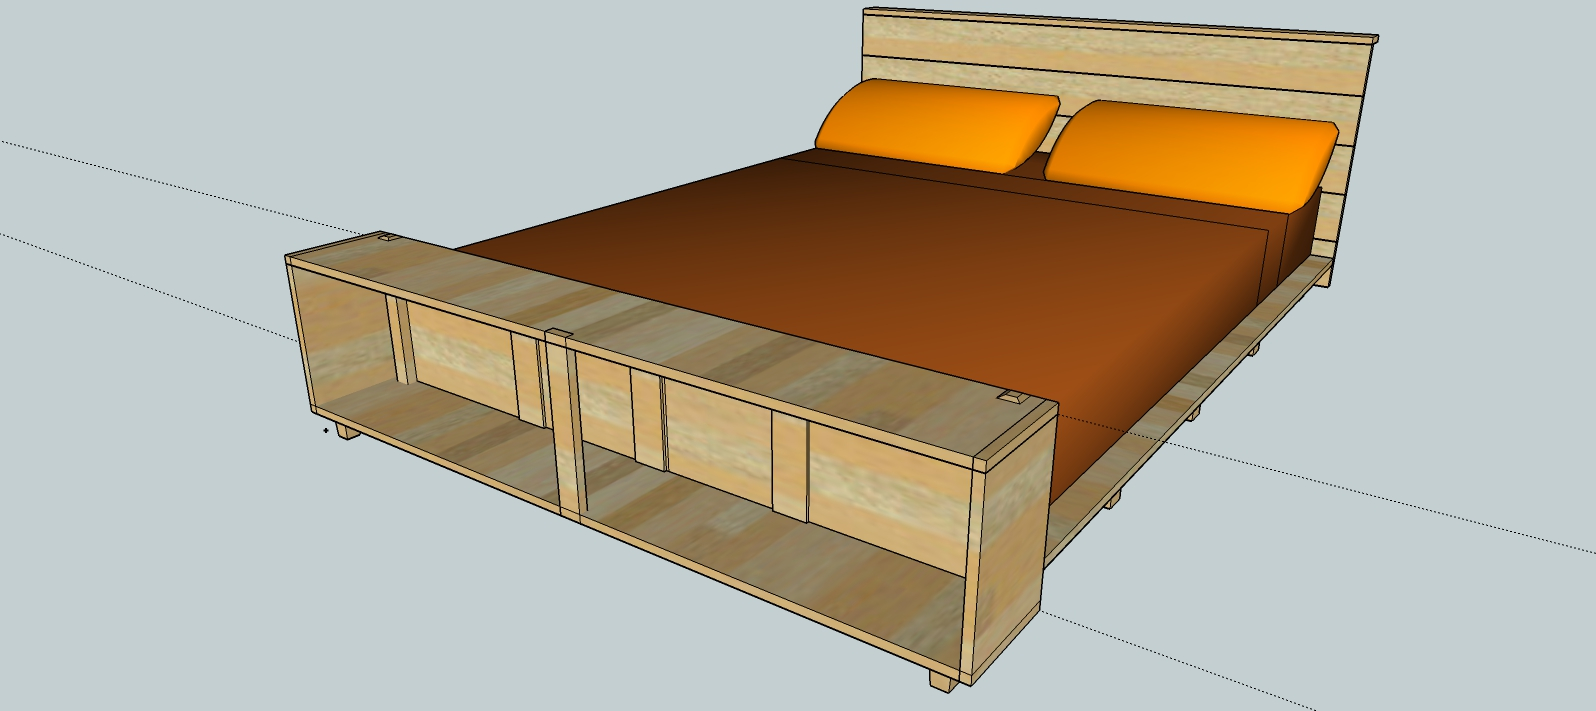 1596x711 This Week In The Shop Queen Sized Bed Woodshopcowboy